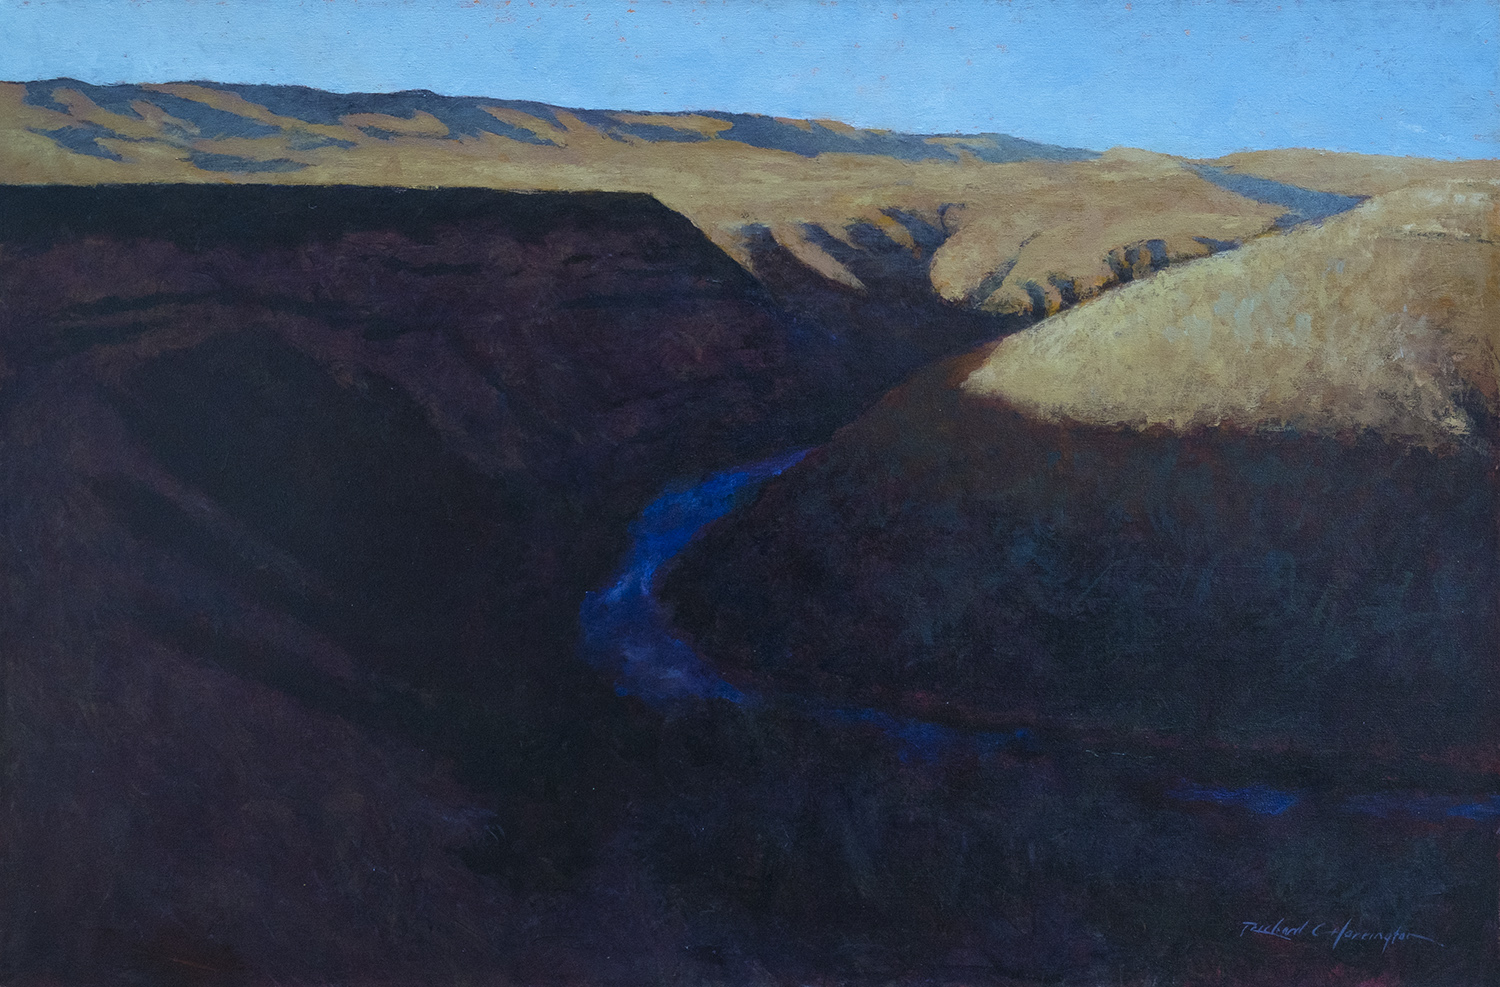 Deschutes in Shadow, oil on canvas,